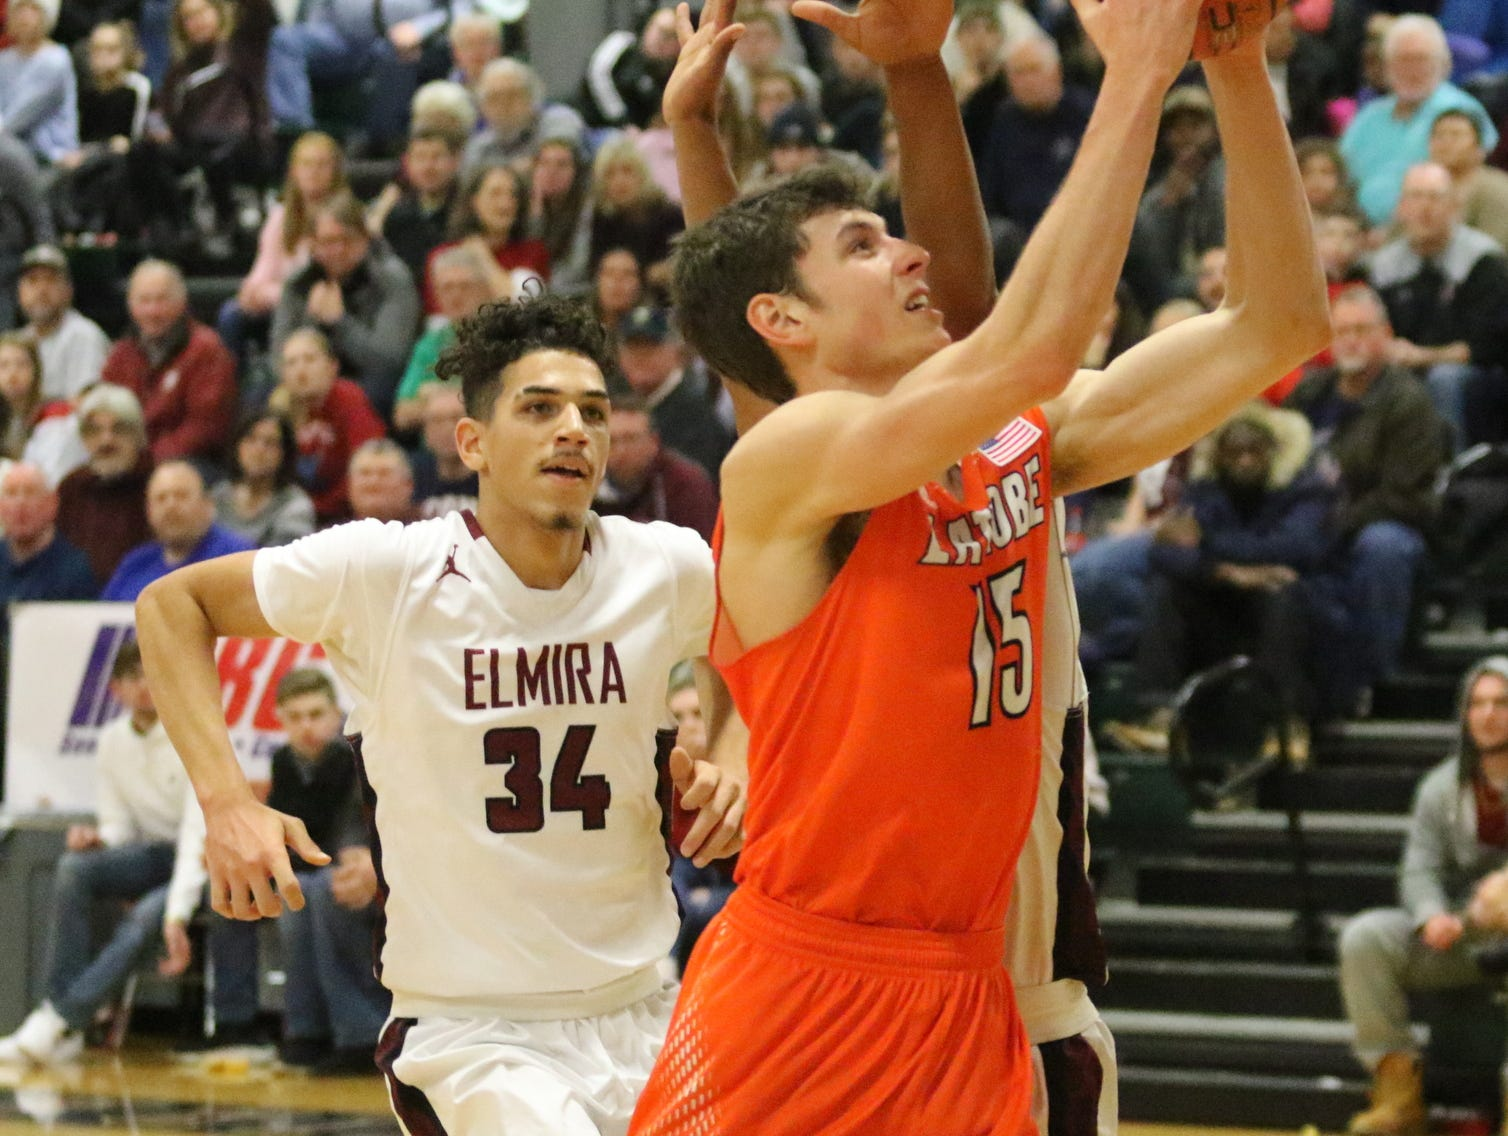 Reed Fenton of Greater Latrobe goes up for a layup in a 71-50 win over Elmira in the boys National Division semifinals at the Josh Palmer Fund Elmira Holiday Inn Classic on Dec. 29, 2018 at Elmira High School.